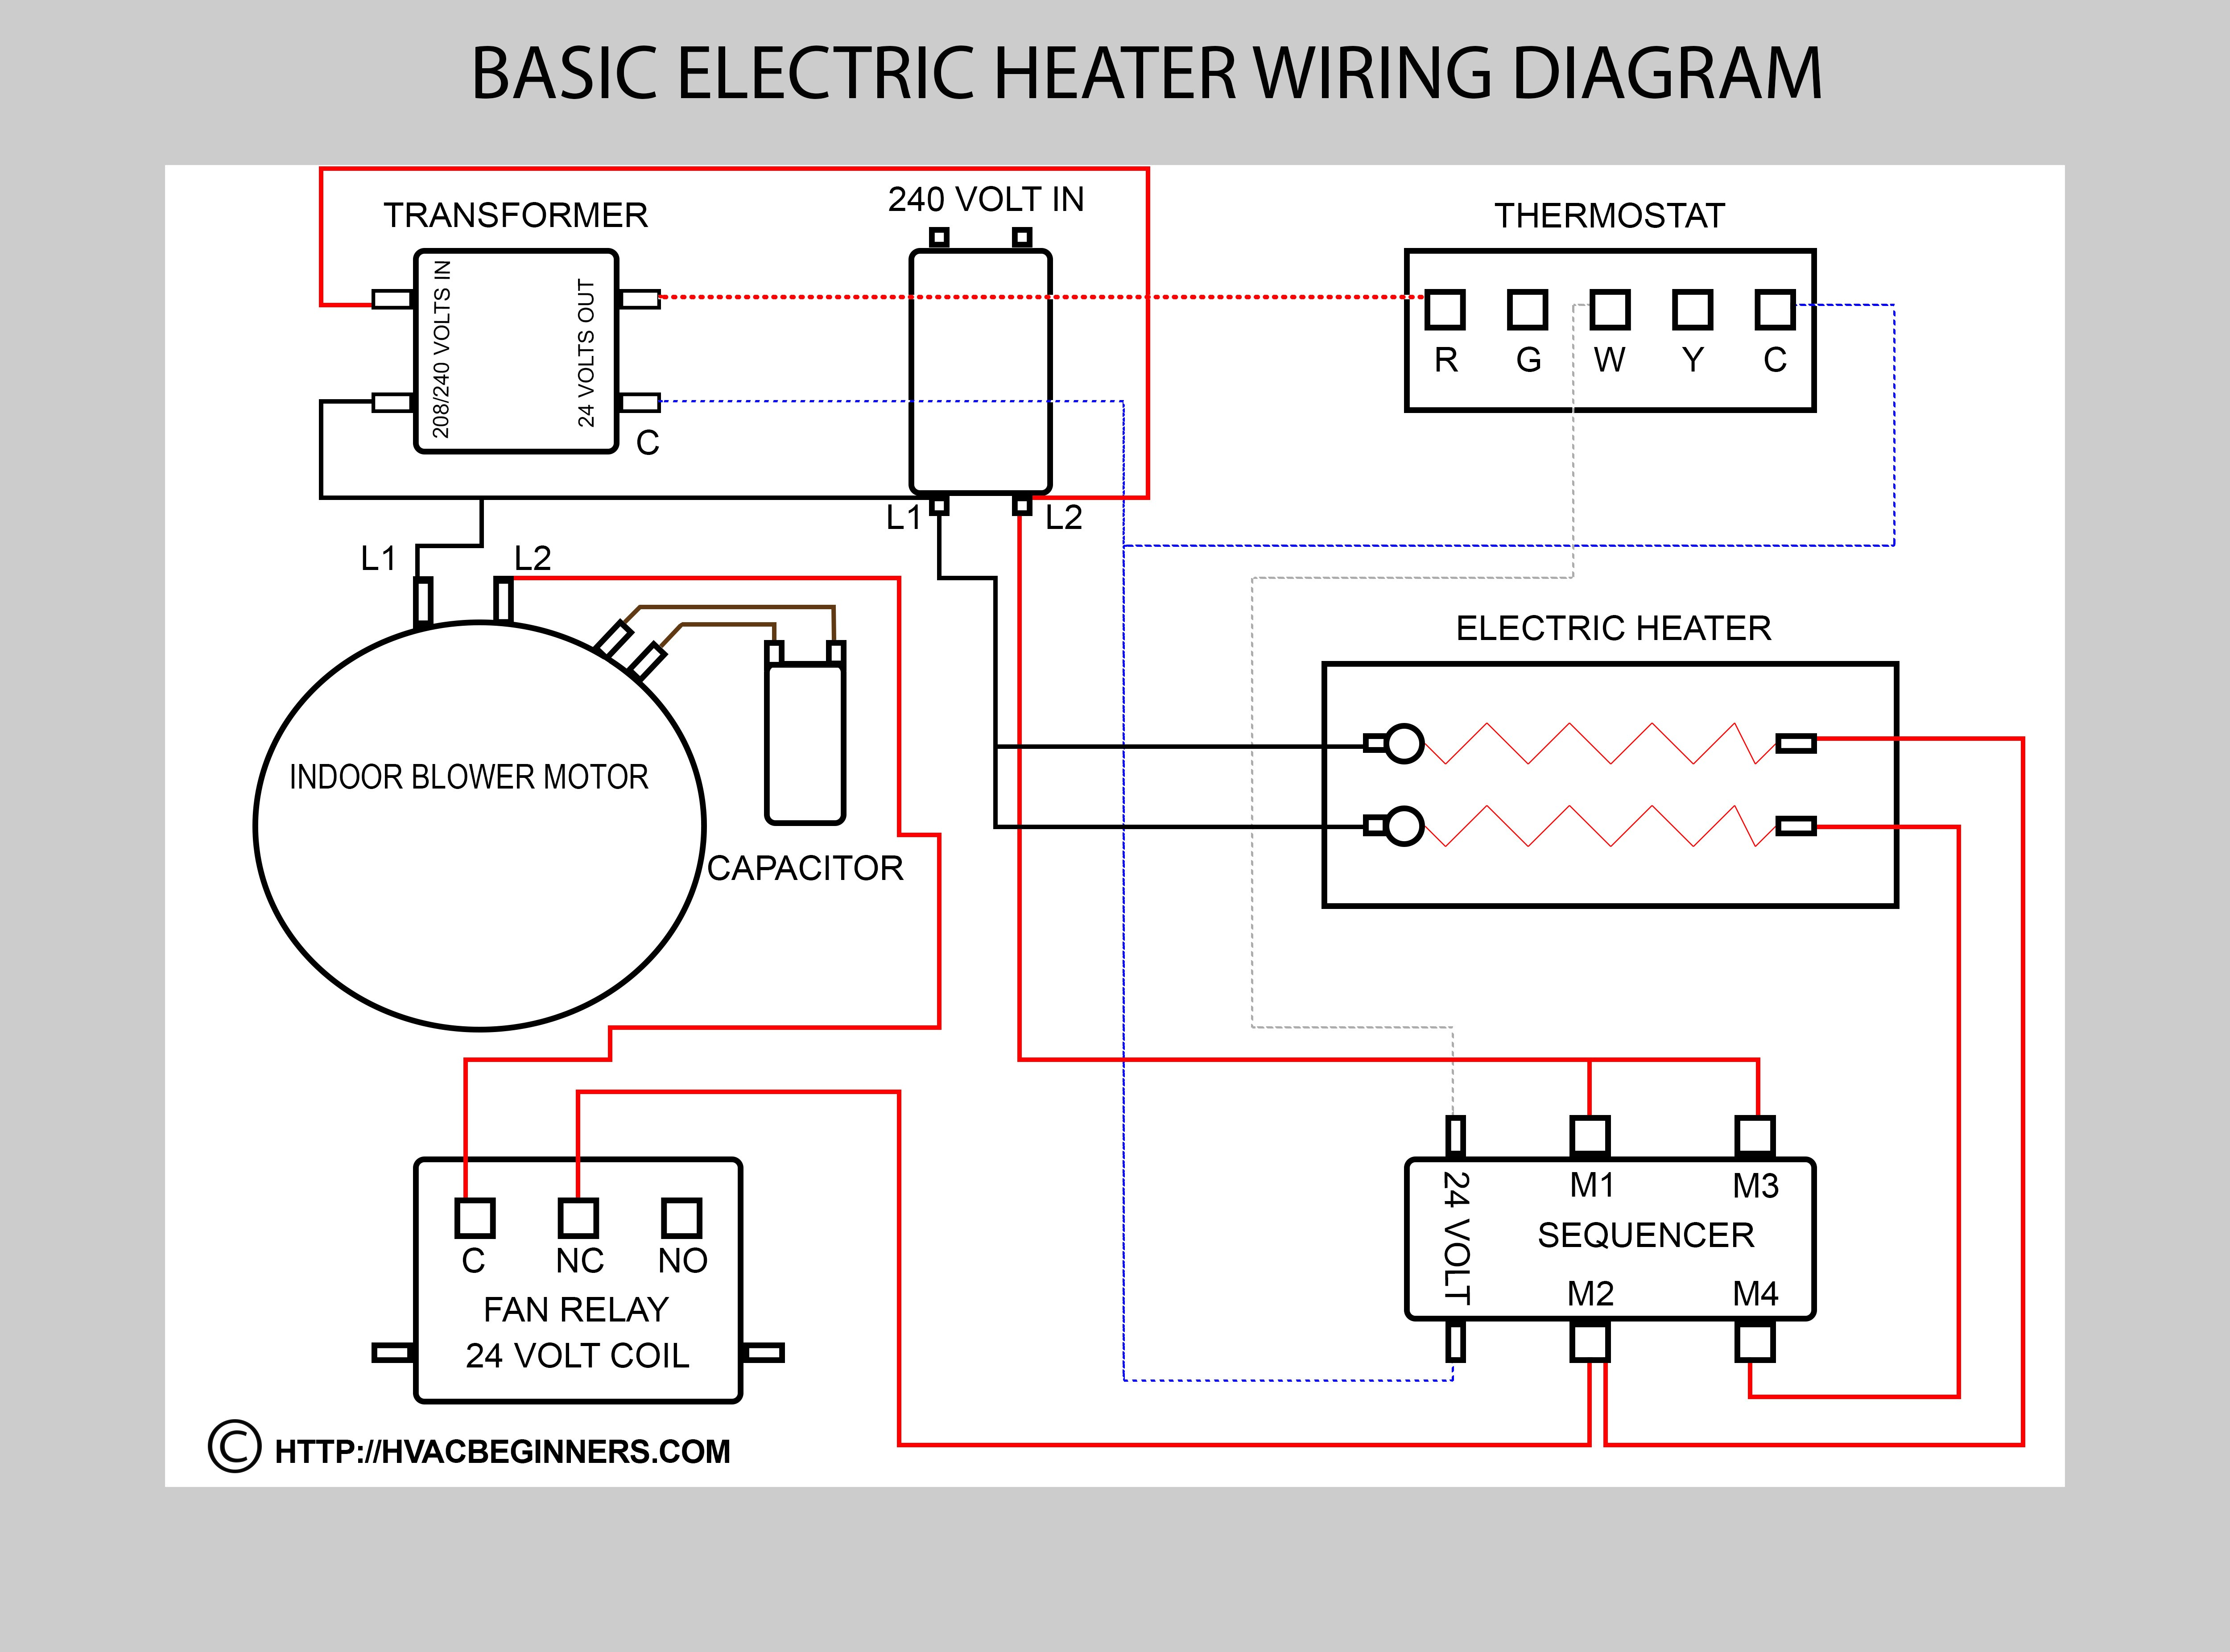 Ac Wire Diagram 1998 Zx2 Excellent Electrical Wiring House Oil Furnace My Front Axle Mods Interior